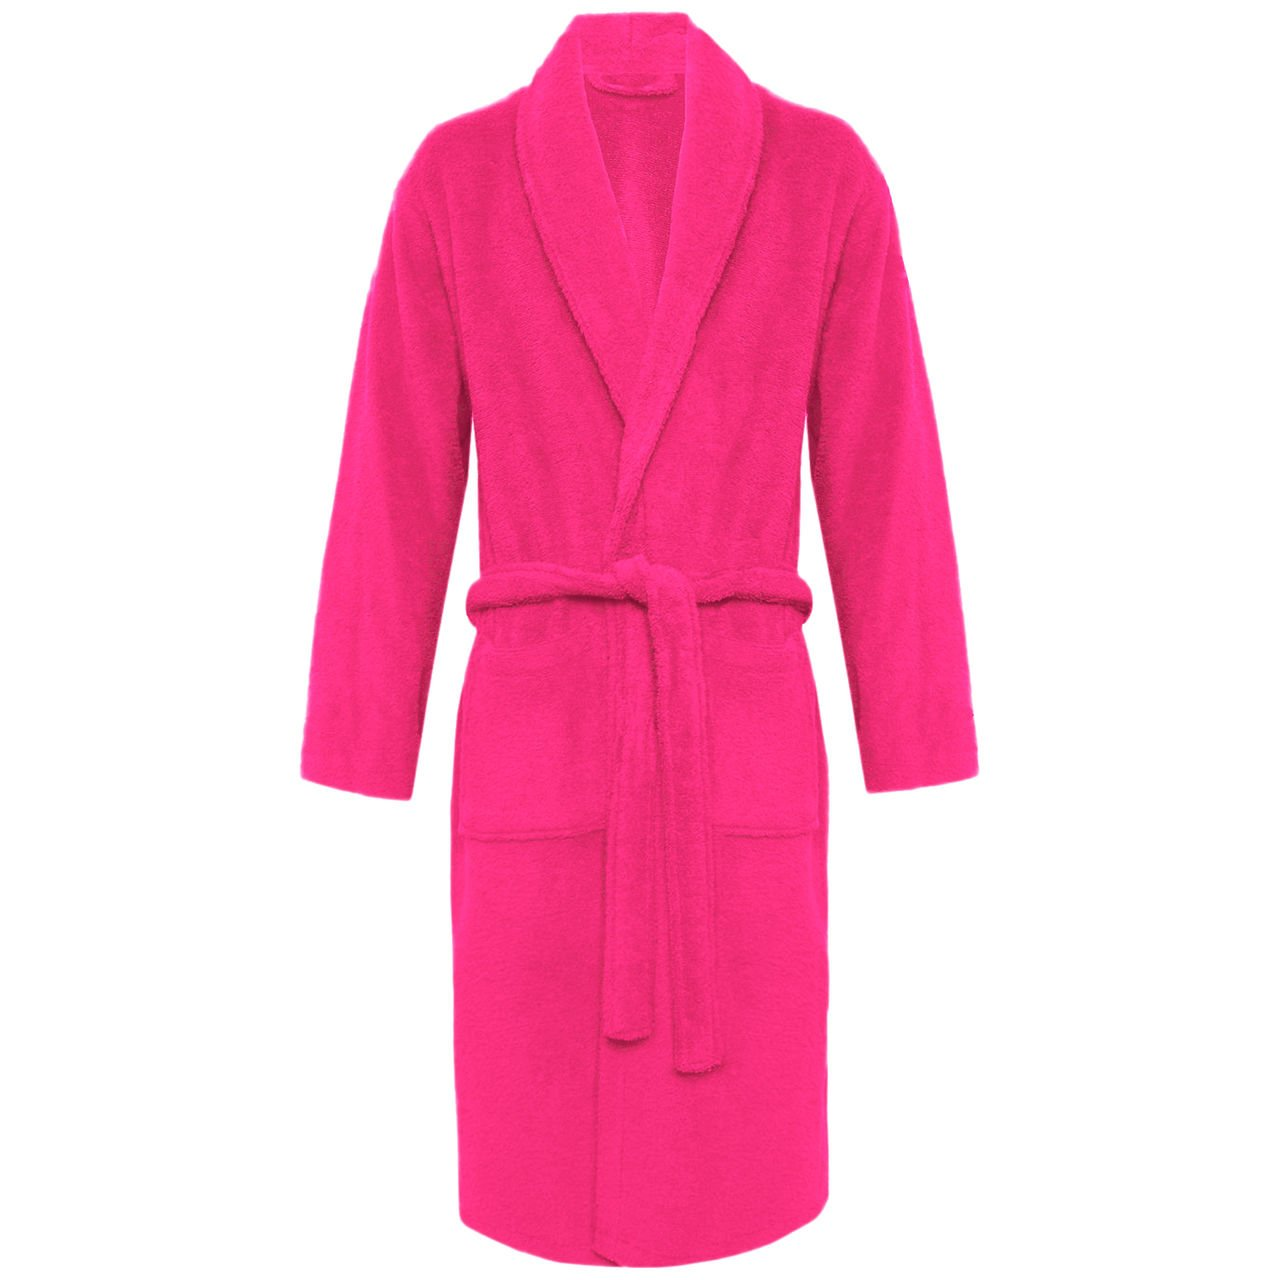 Unisex 100% Luxury Egyptian Cotton Super Soft Velour Towelling Bath Robe Dressing Gowns Bathrobe Terry Towel Housecoat Nightwear Lounge Wears With Pockets And Belt